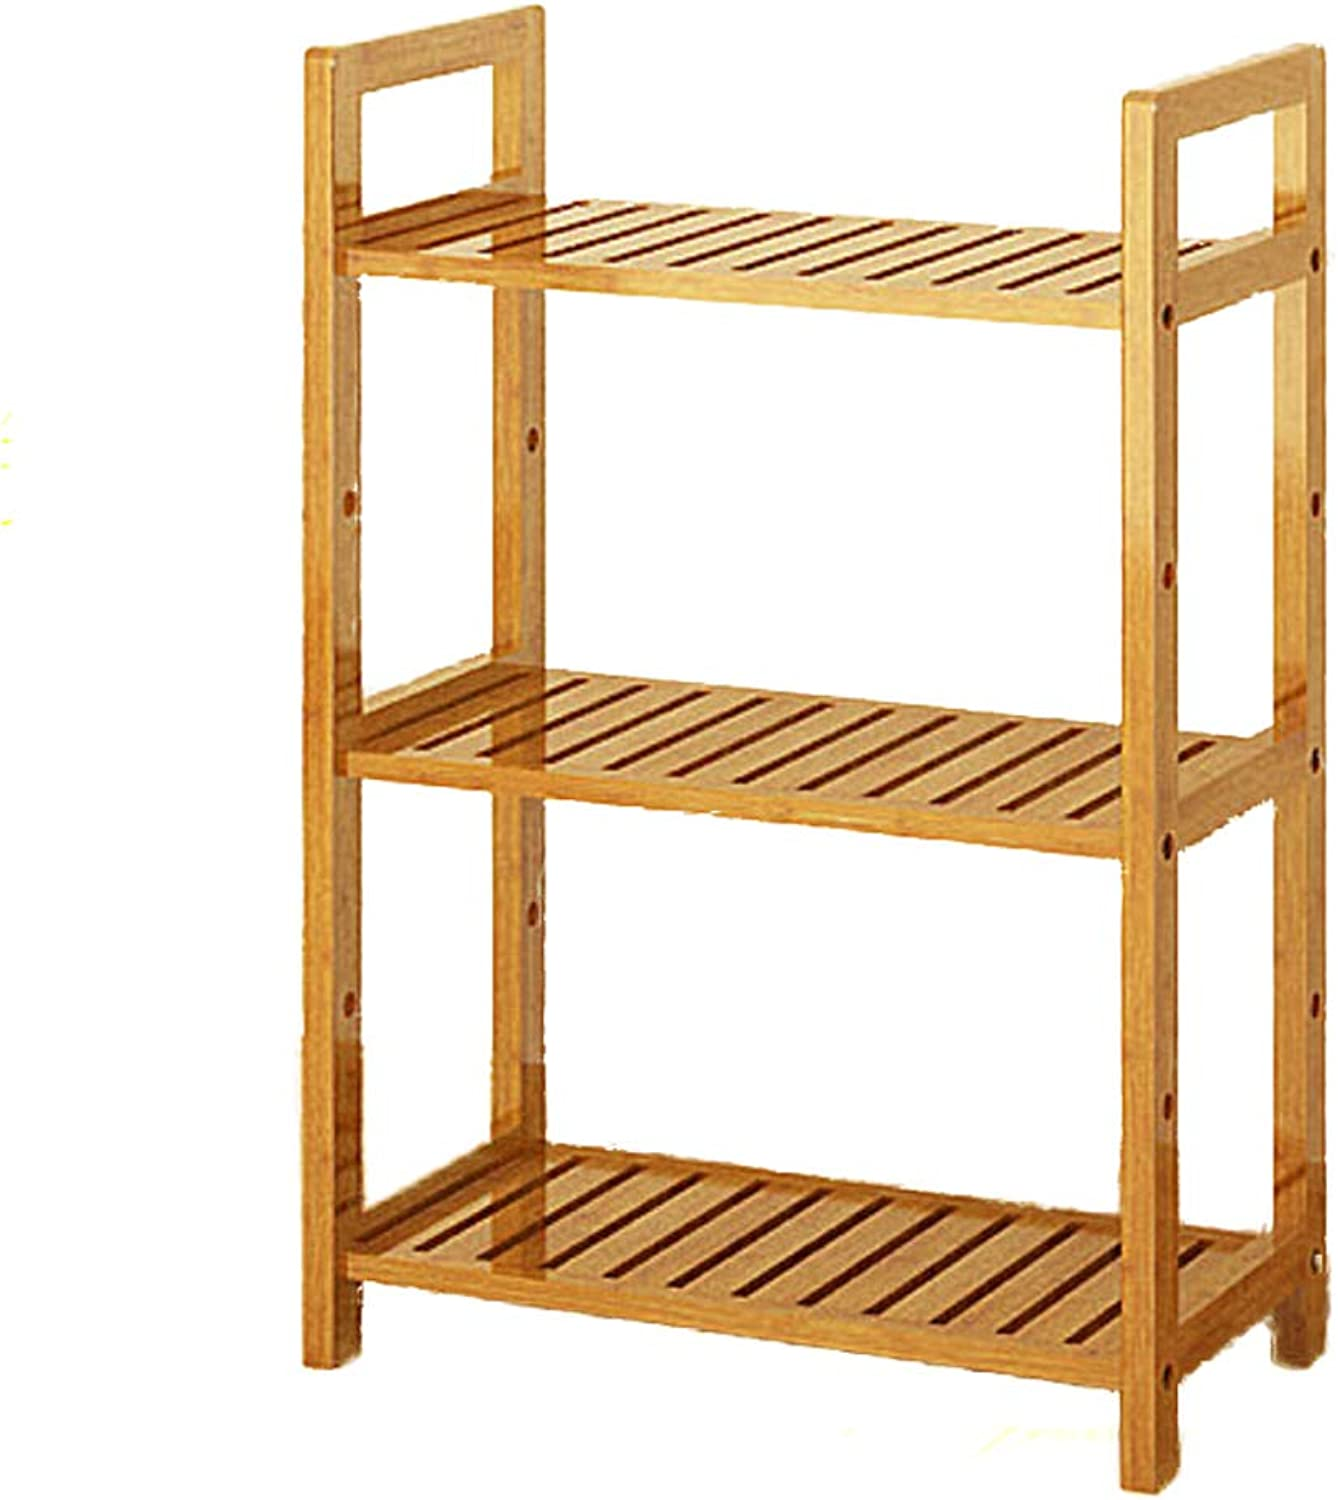 3-5 Tier Wood Bookshelf,Multifunctional Shelf Bookcase Thickened Floor-Standing Storage Organizer Display Storage Furniture-D 50x25x70cm(20x10x28inch)